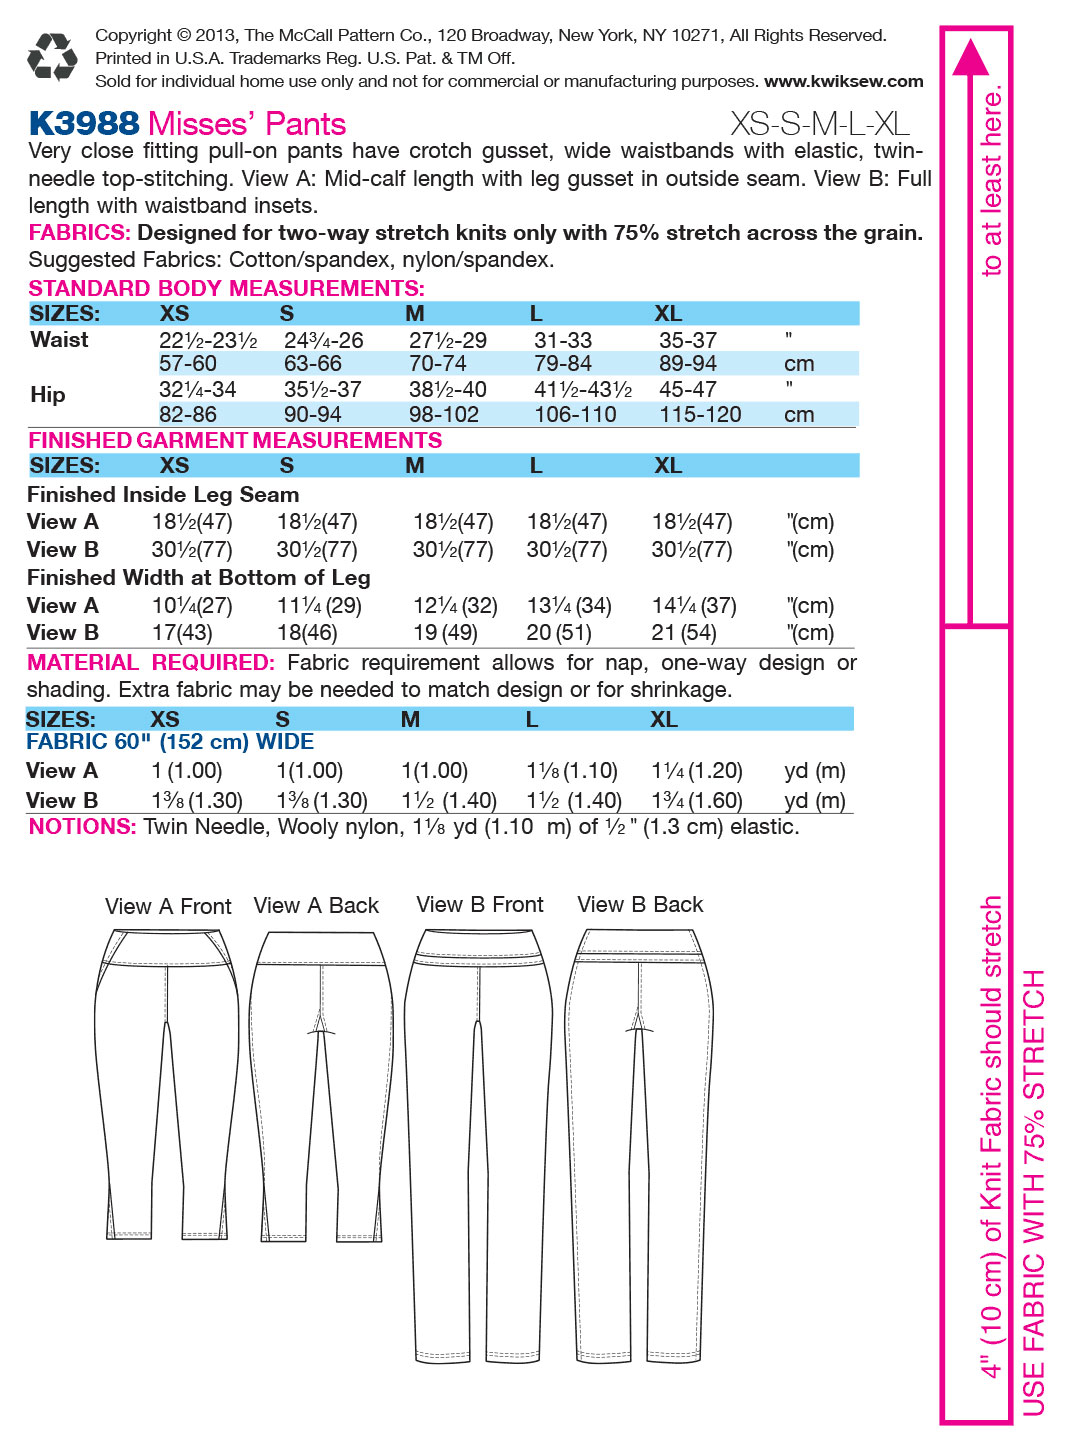 Kwik Sew Misses Pants-K3988